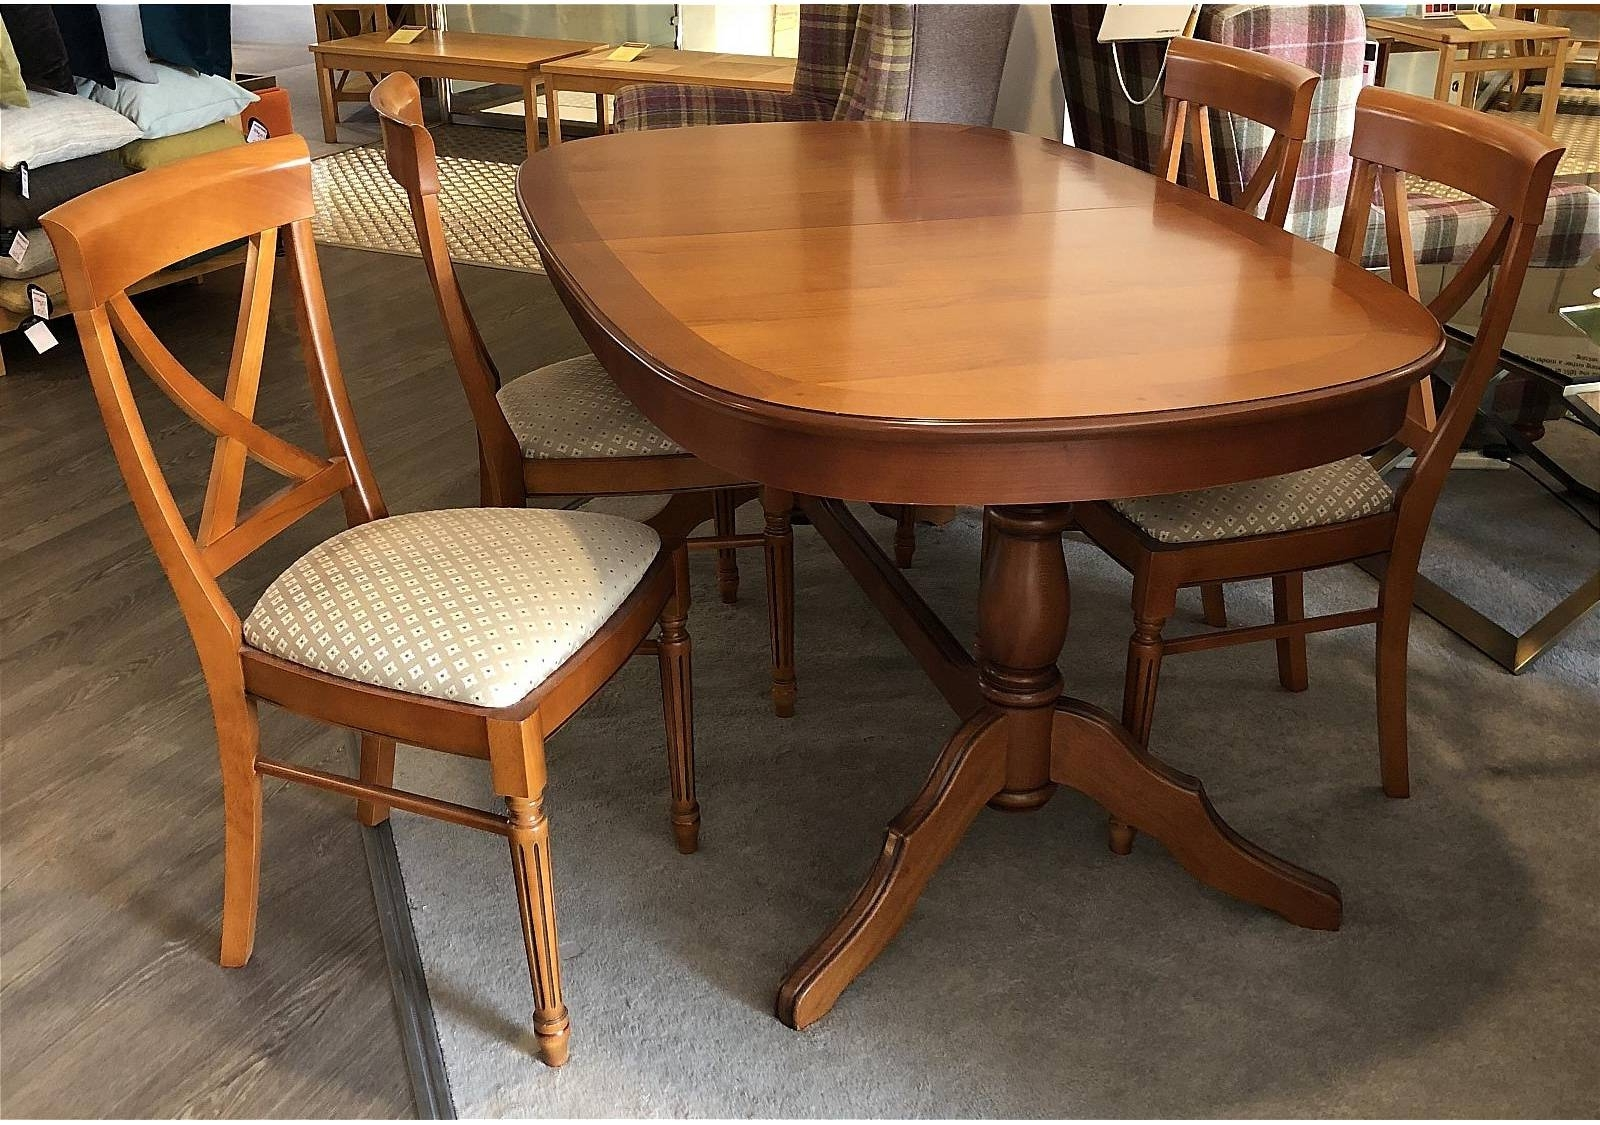 Vale Furnishers Cork Medium Oval Extending Dining Table And 4 Cross In Well Known Cork Dining Tables (Gallery 17 of 25)